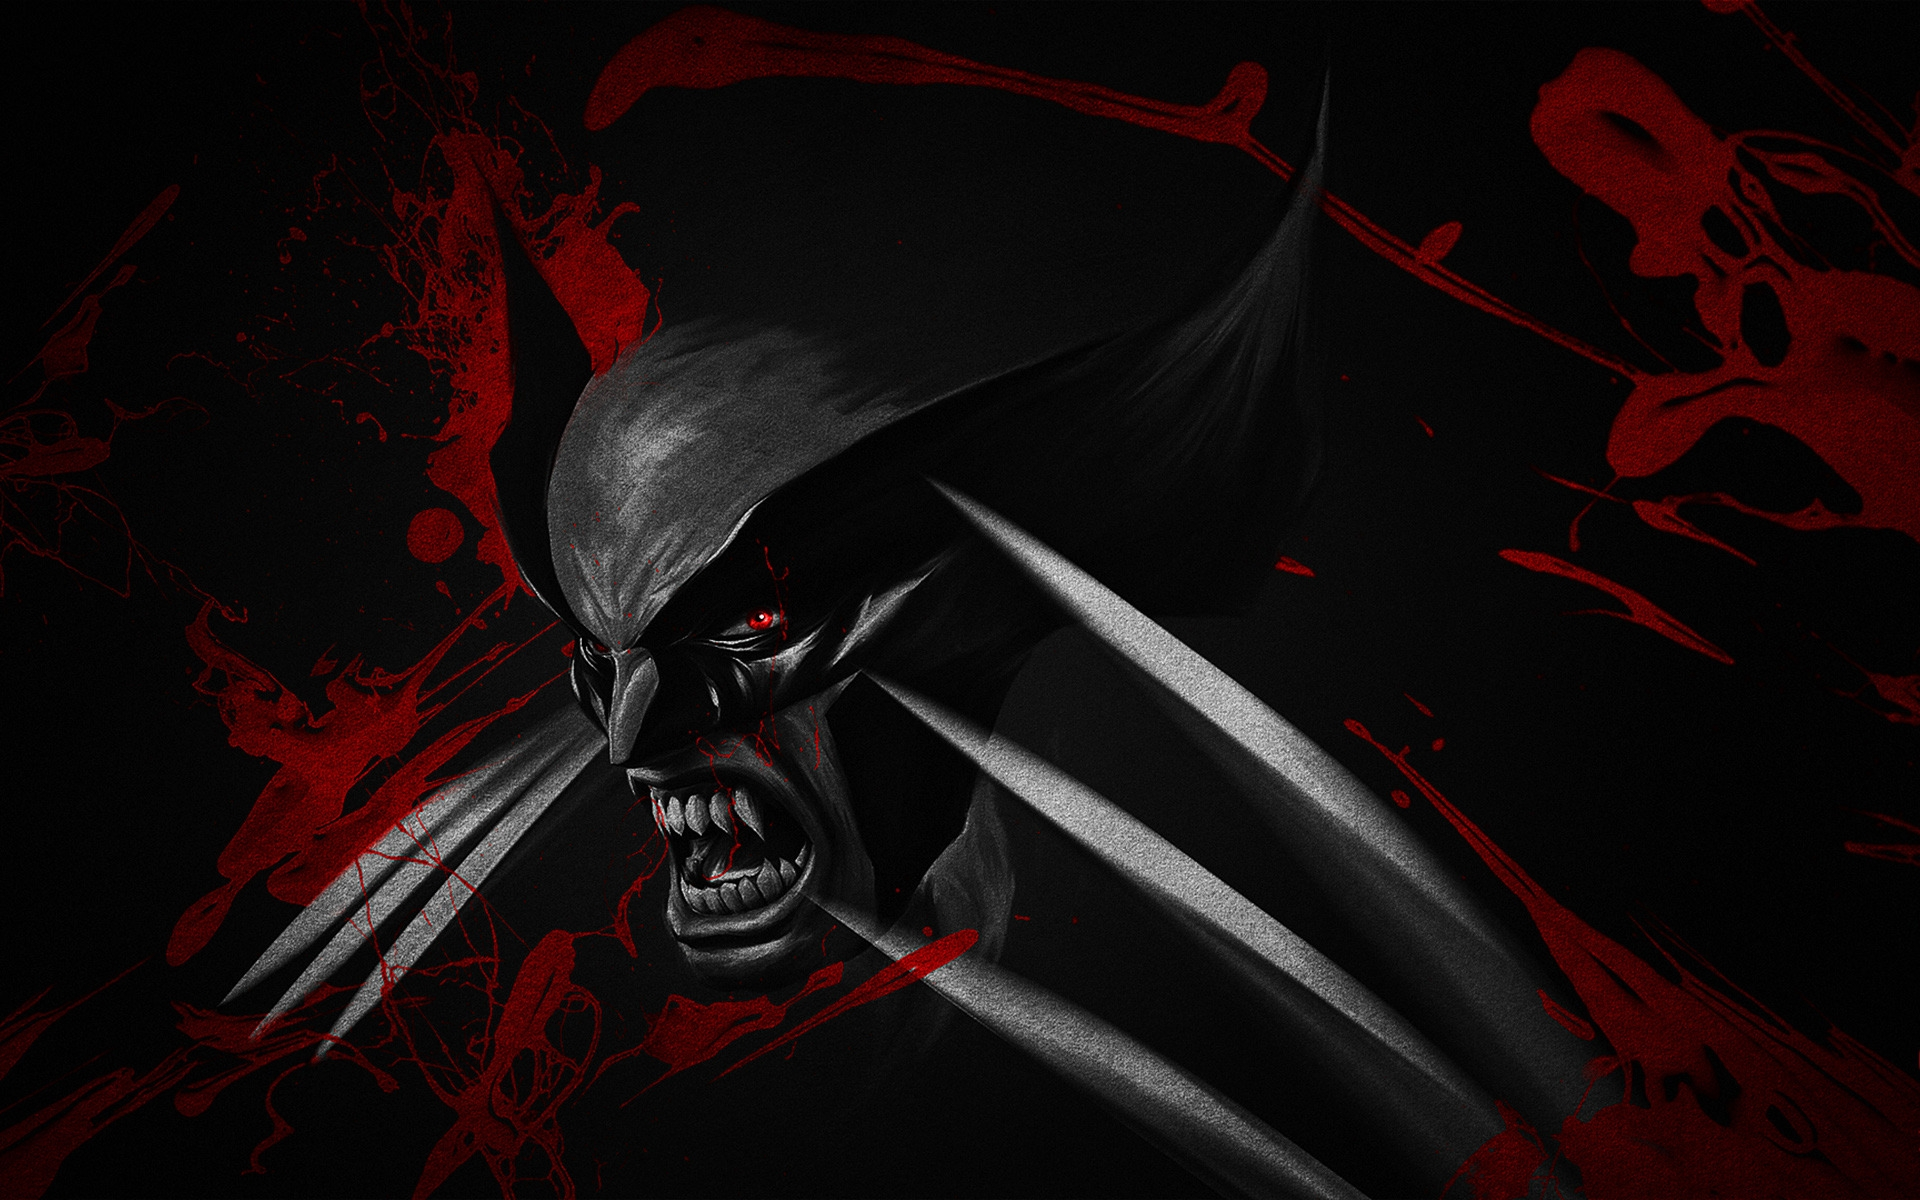 Wallpaper HD Black and Red Wolverine   HD Wallpaper Expert 1920x1200